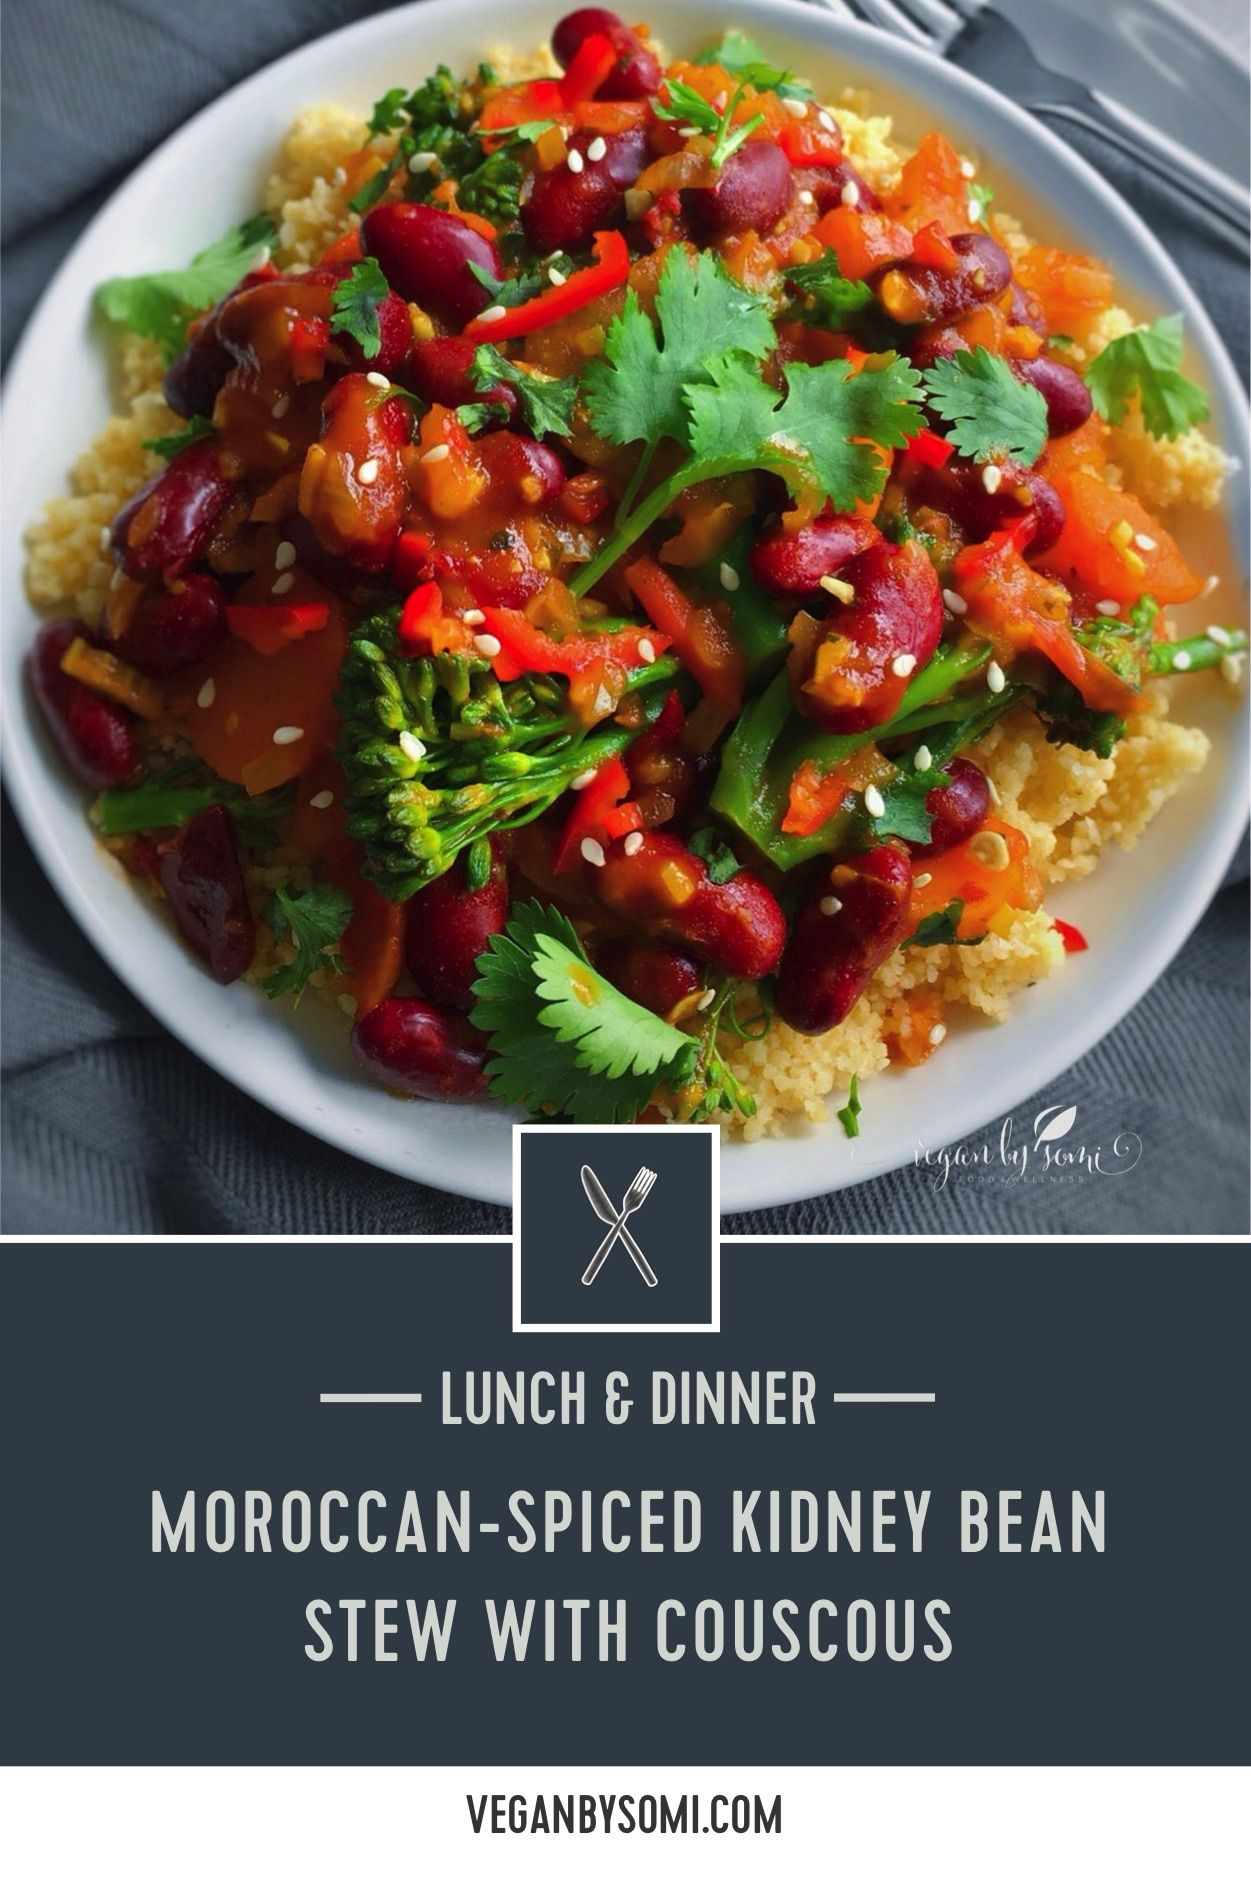 Moroccan Spiced Kidney Bean Stew With Couscous